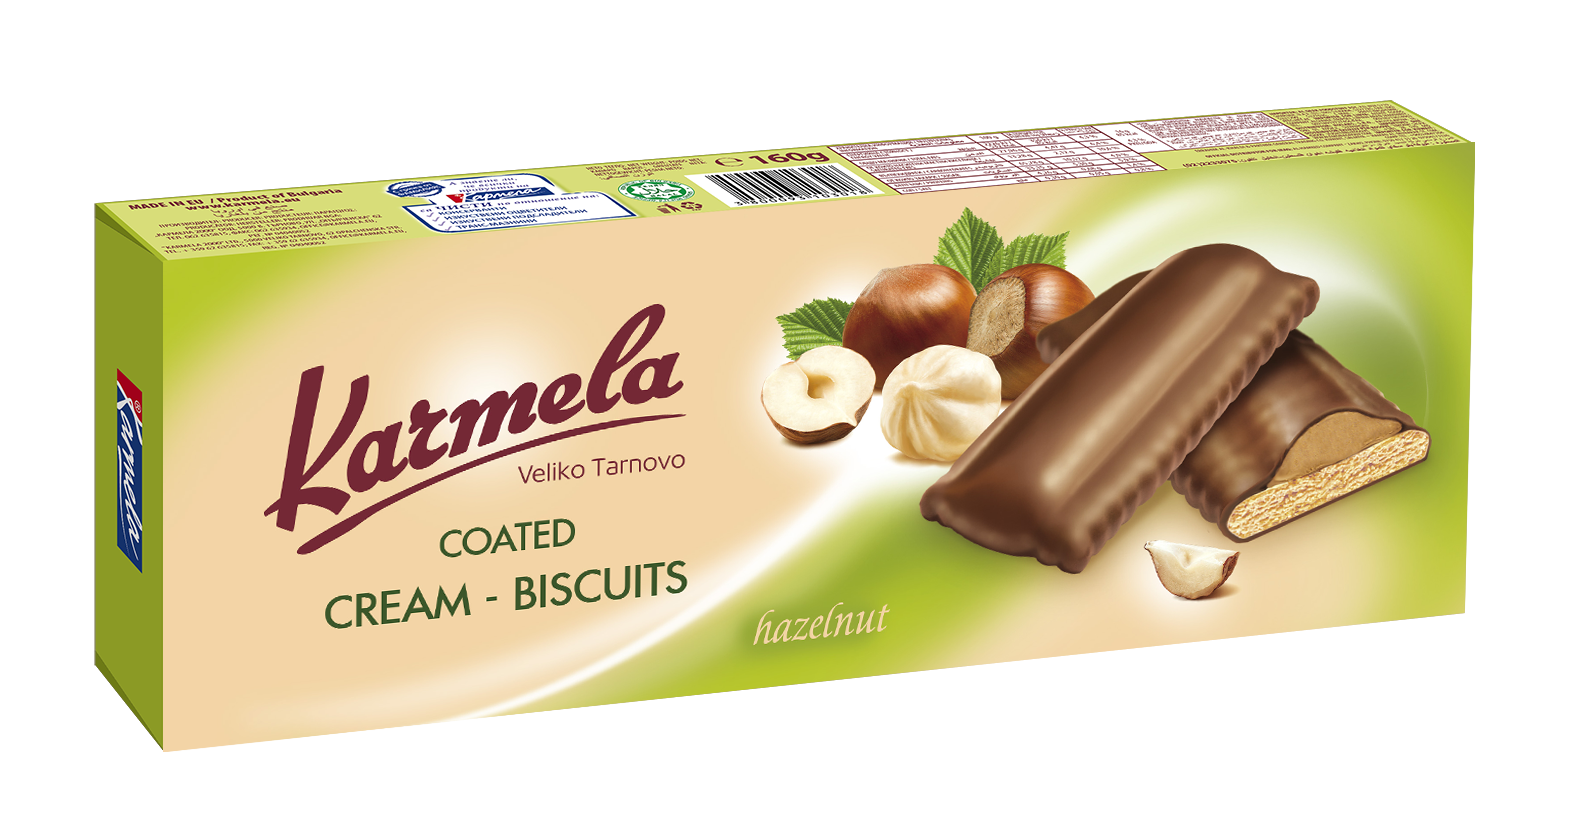 COATED CREAM BISCUITS KARMELA